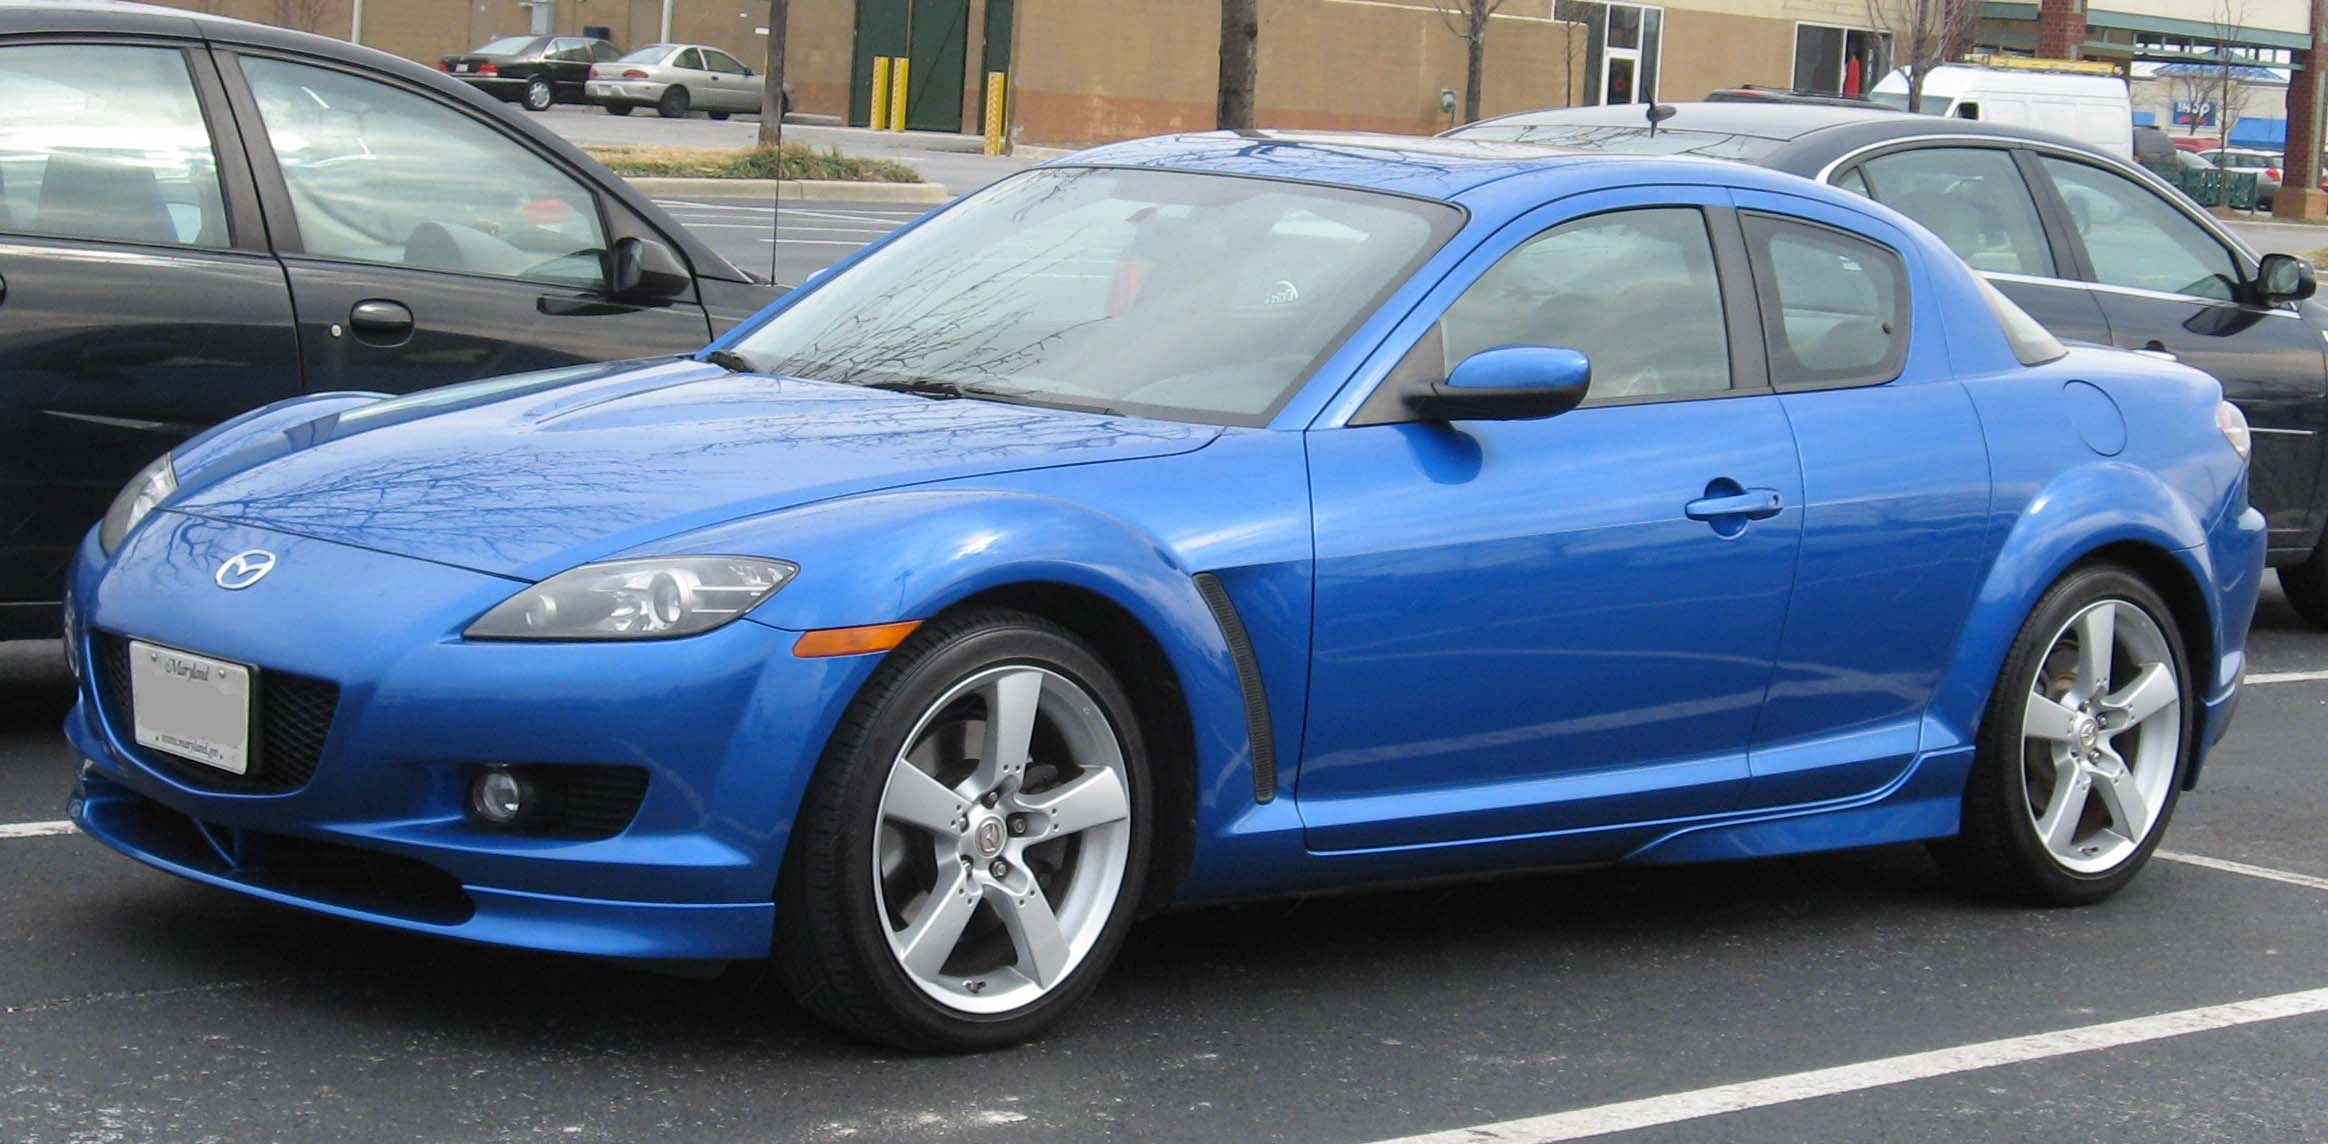 file:mazda rx-8 - wikimedia commons